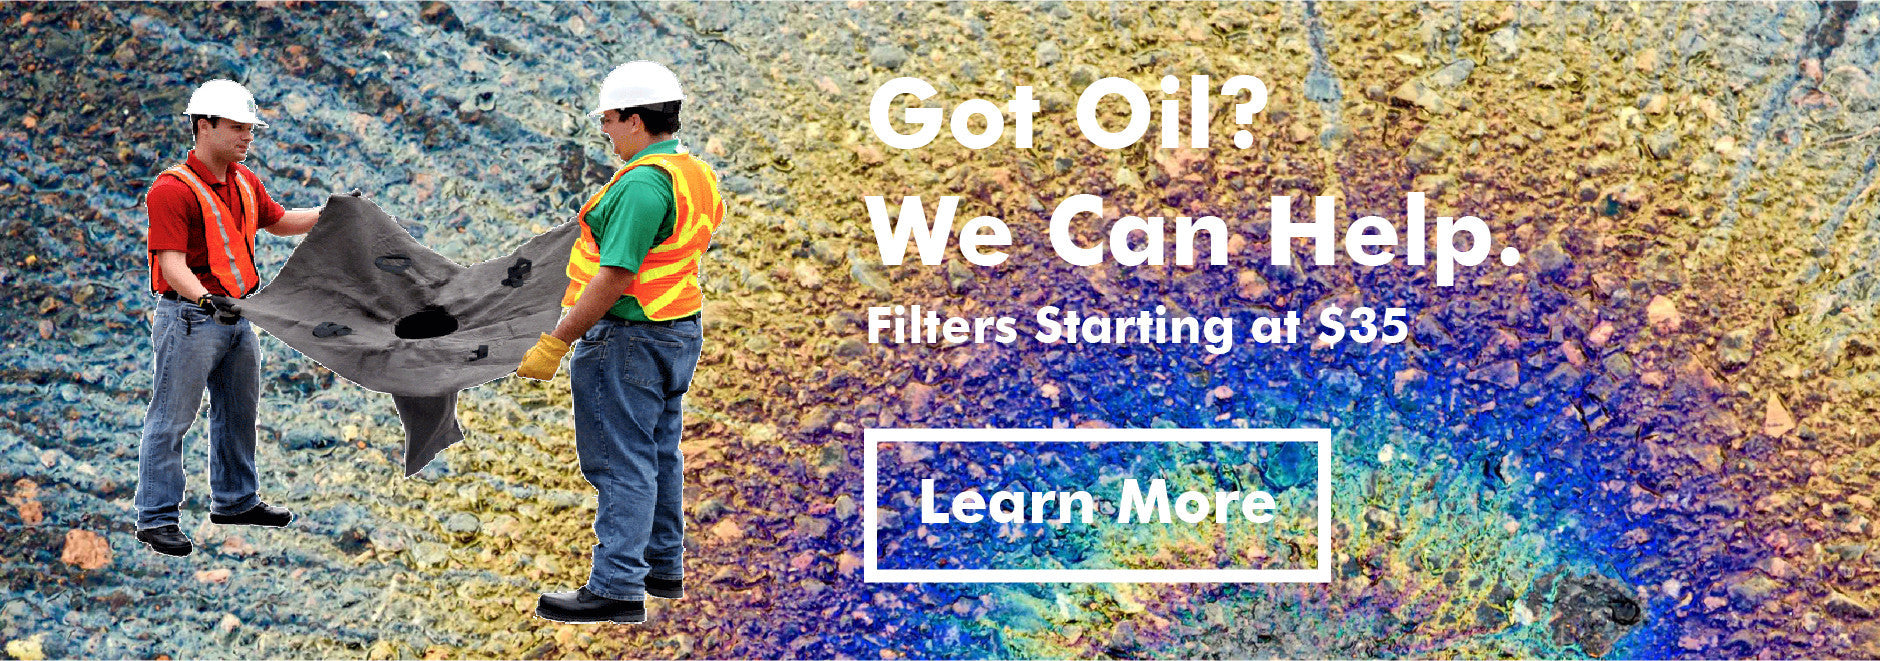 Got Oil? We Can Help!